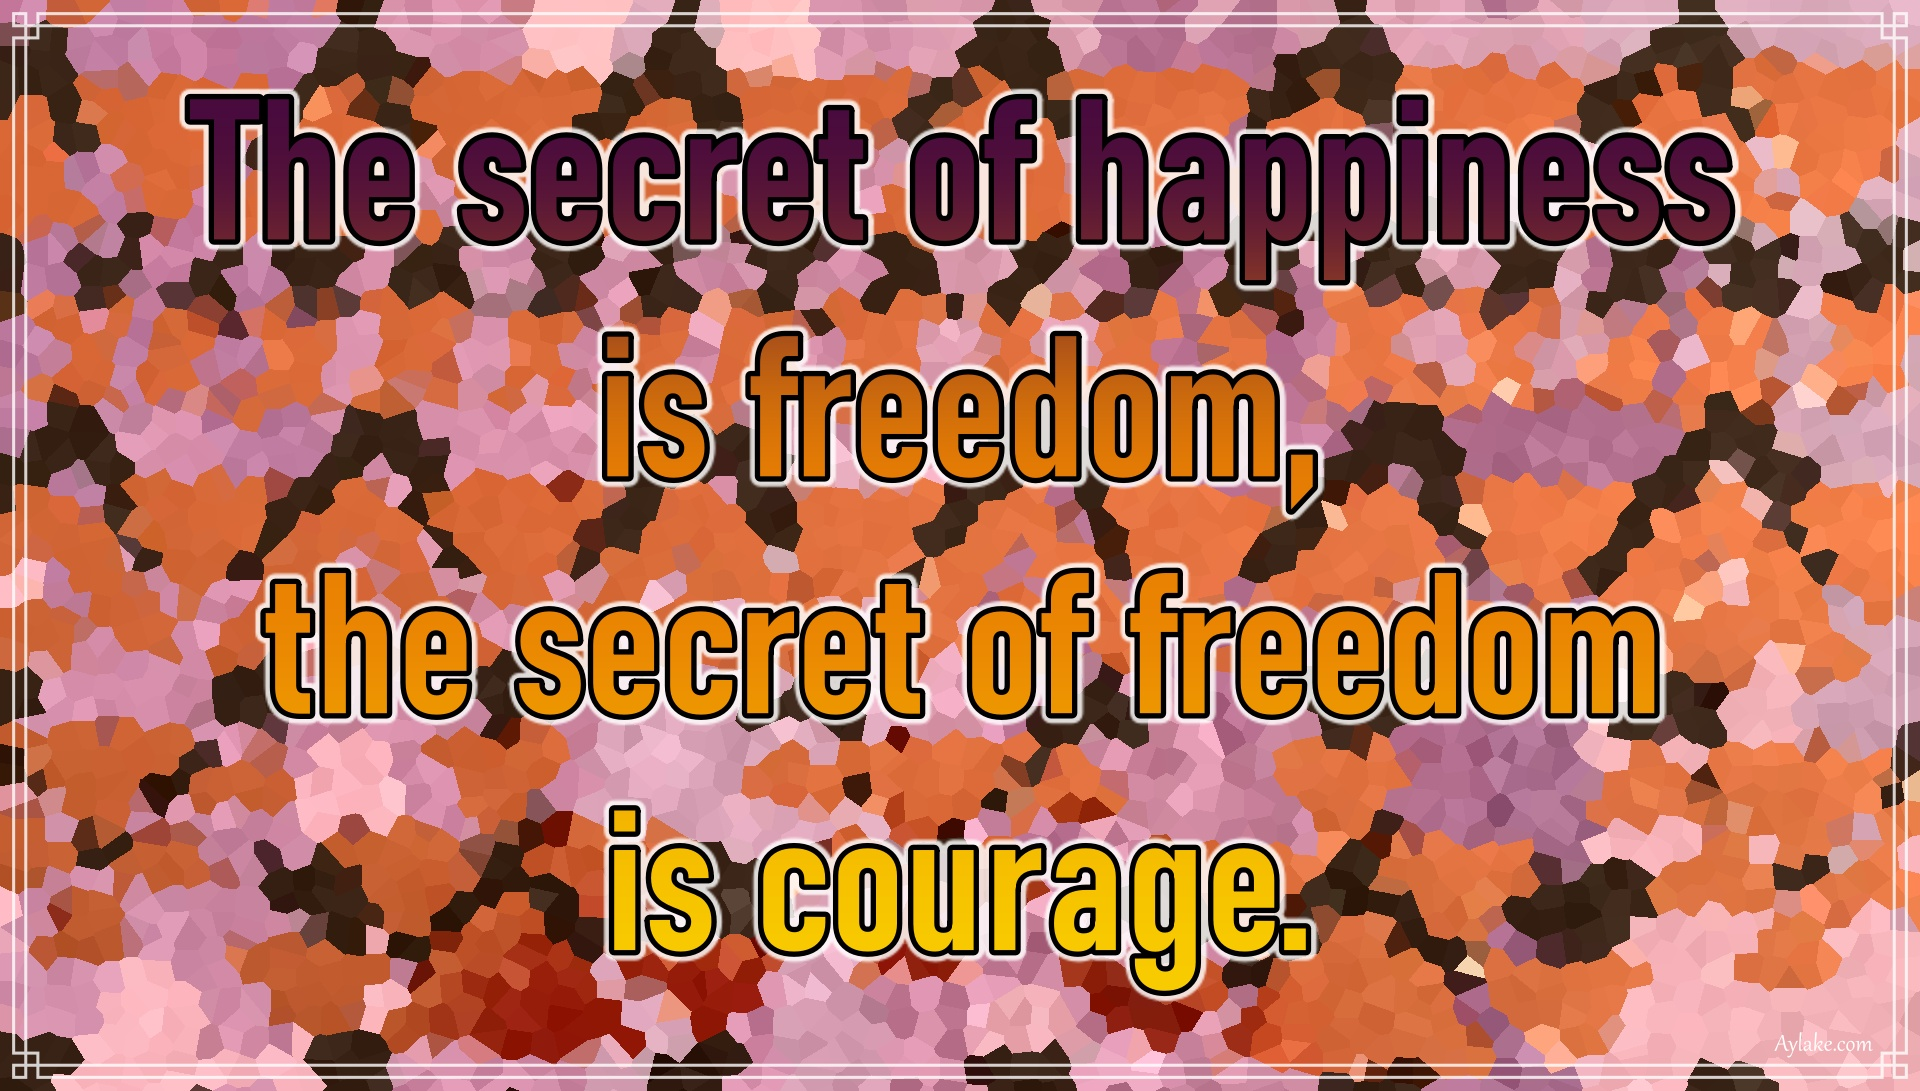 Happiness quotes The secret of happiness is freedom Aylake